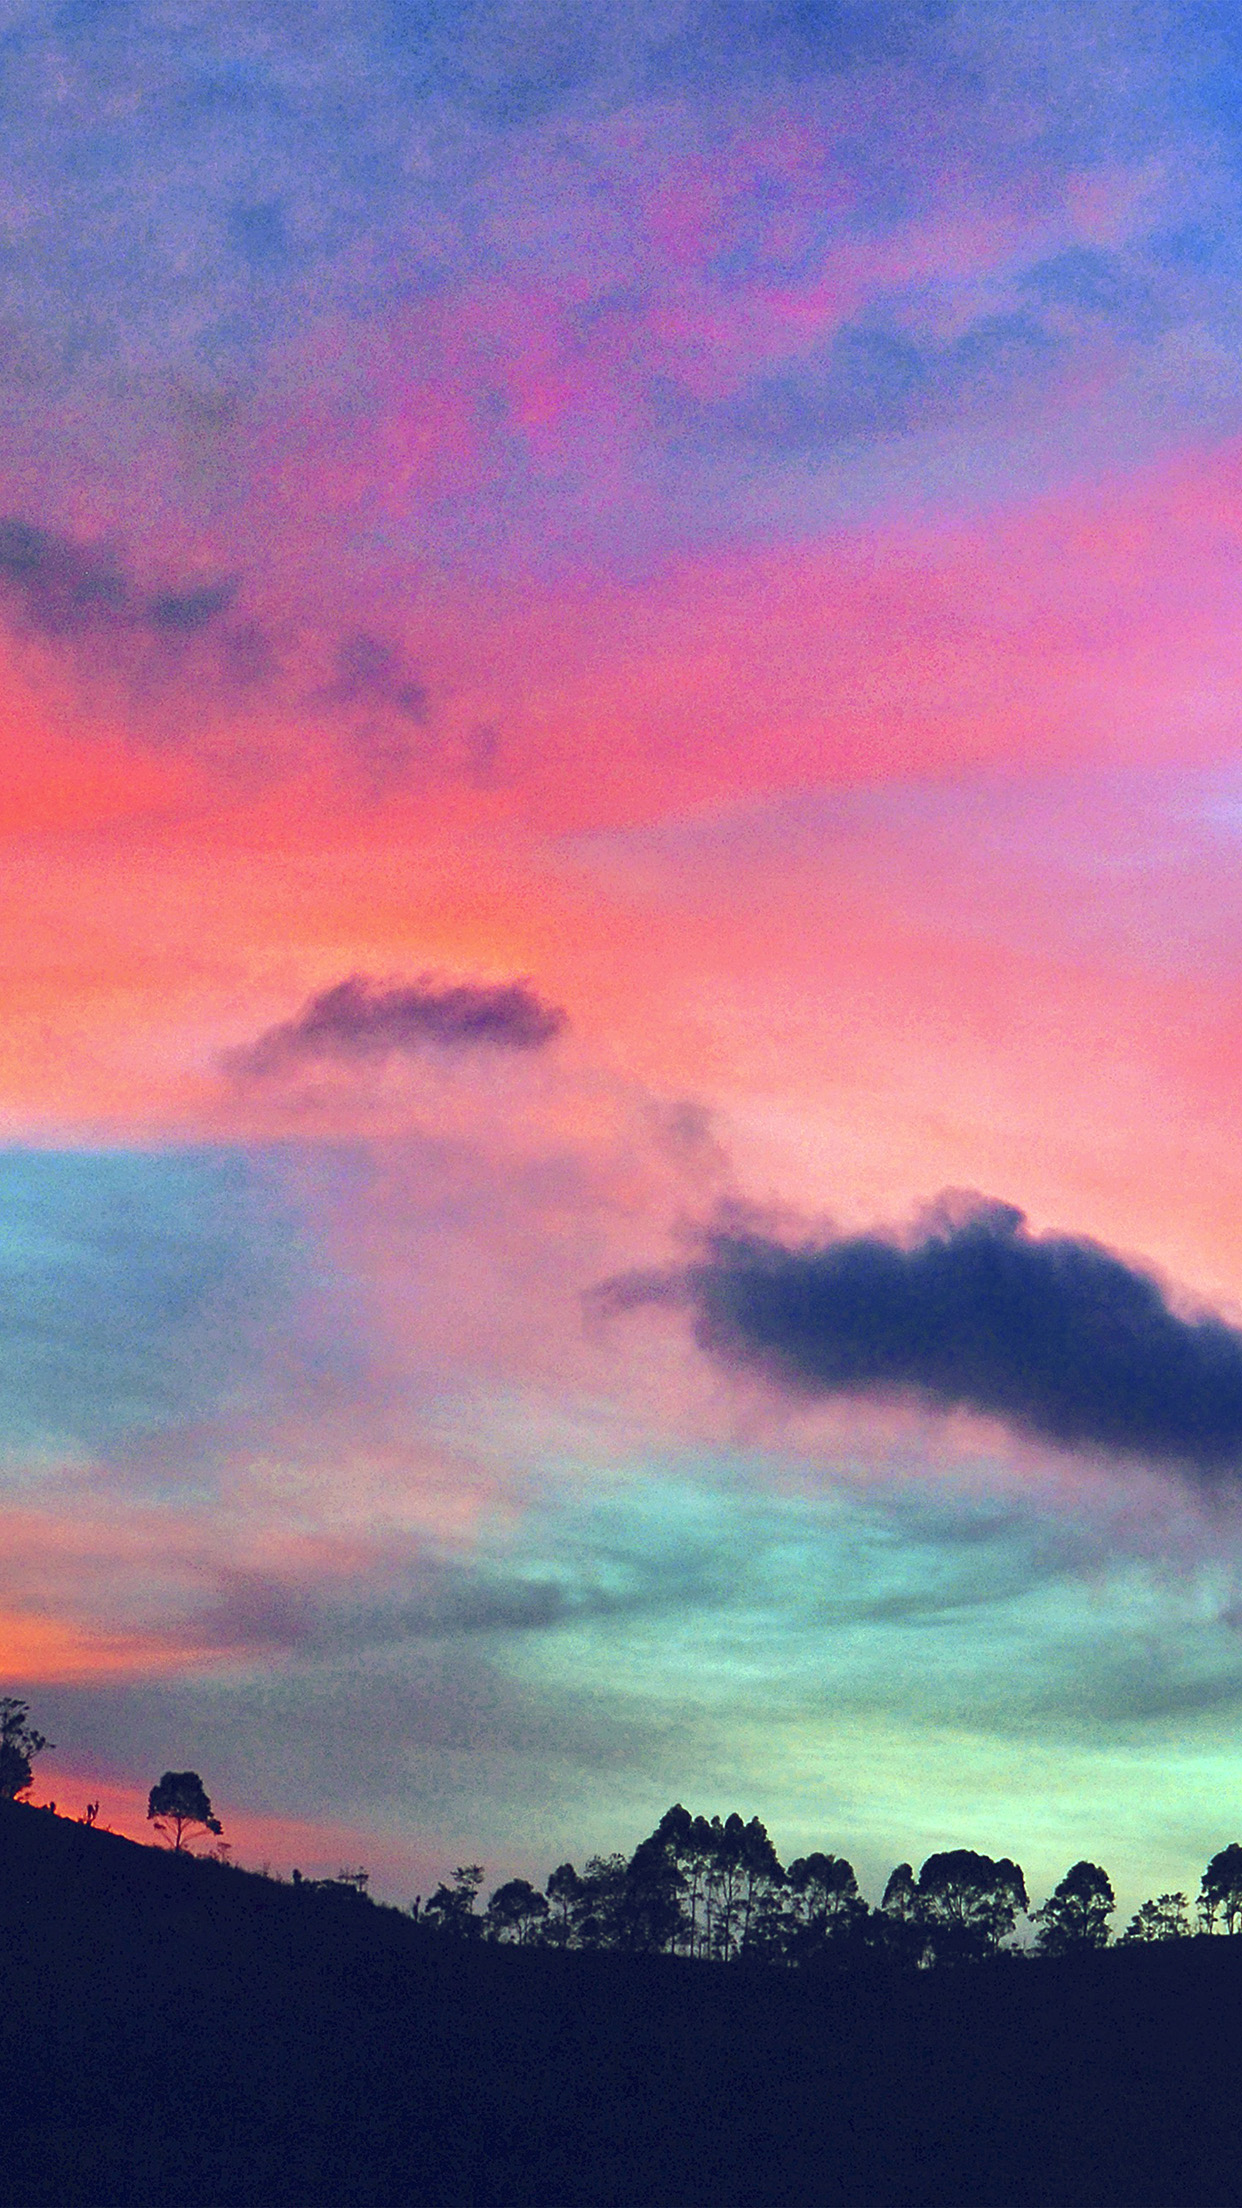 Wallpaper Cute Pink For Iphone 6 Ng96 Sky Rainbow Cloud Sunset Nature Blue Pink Wallpaper